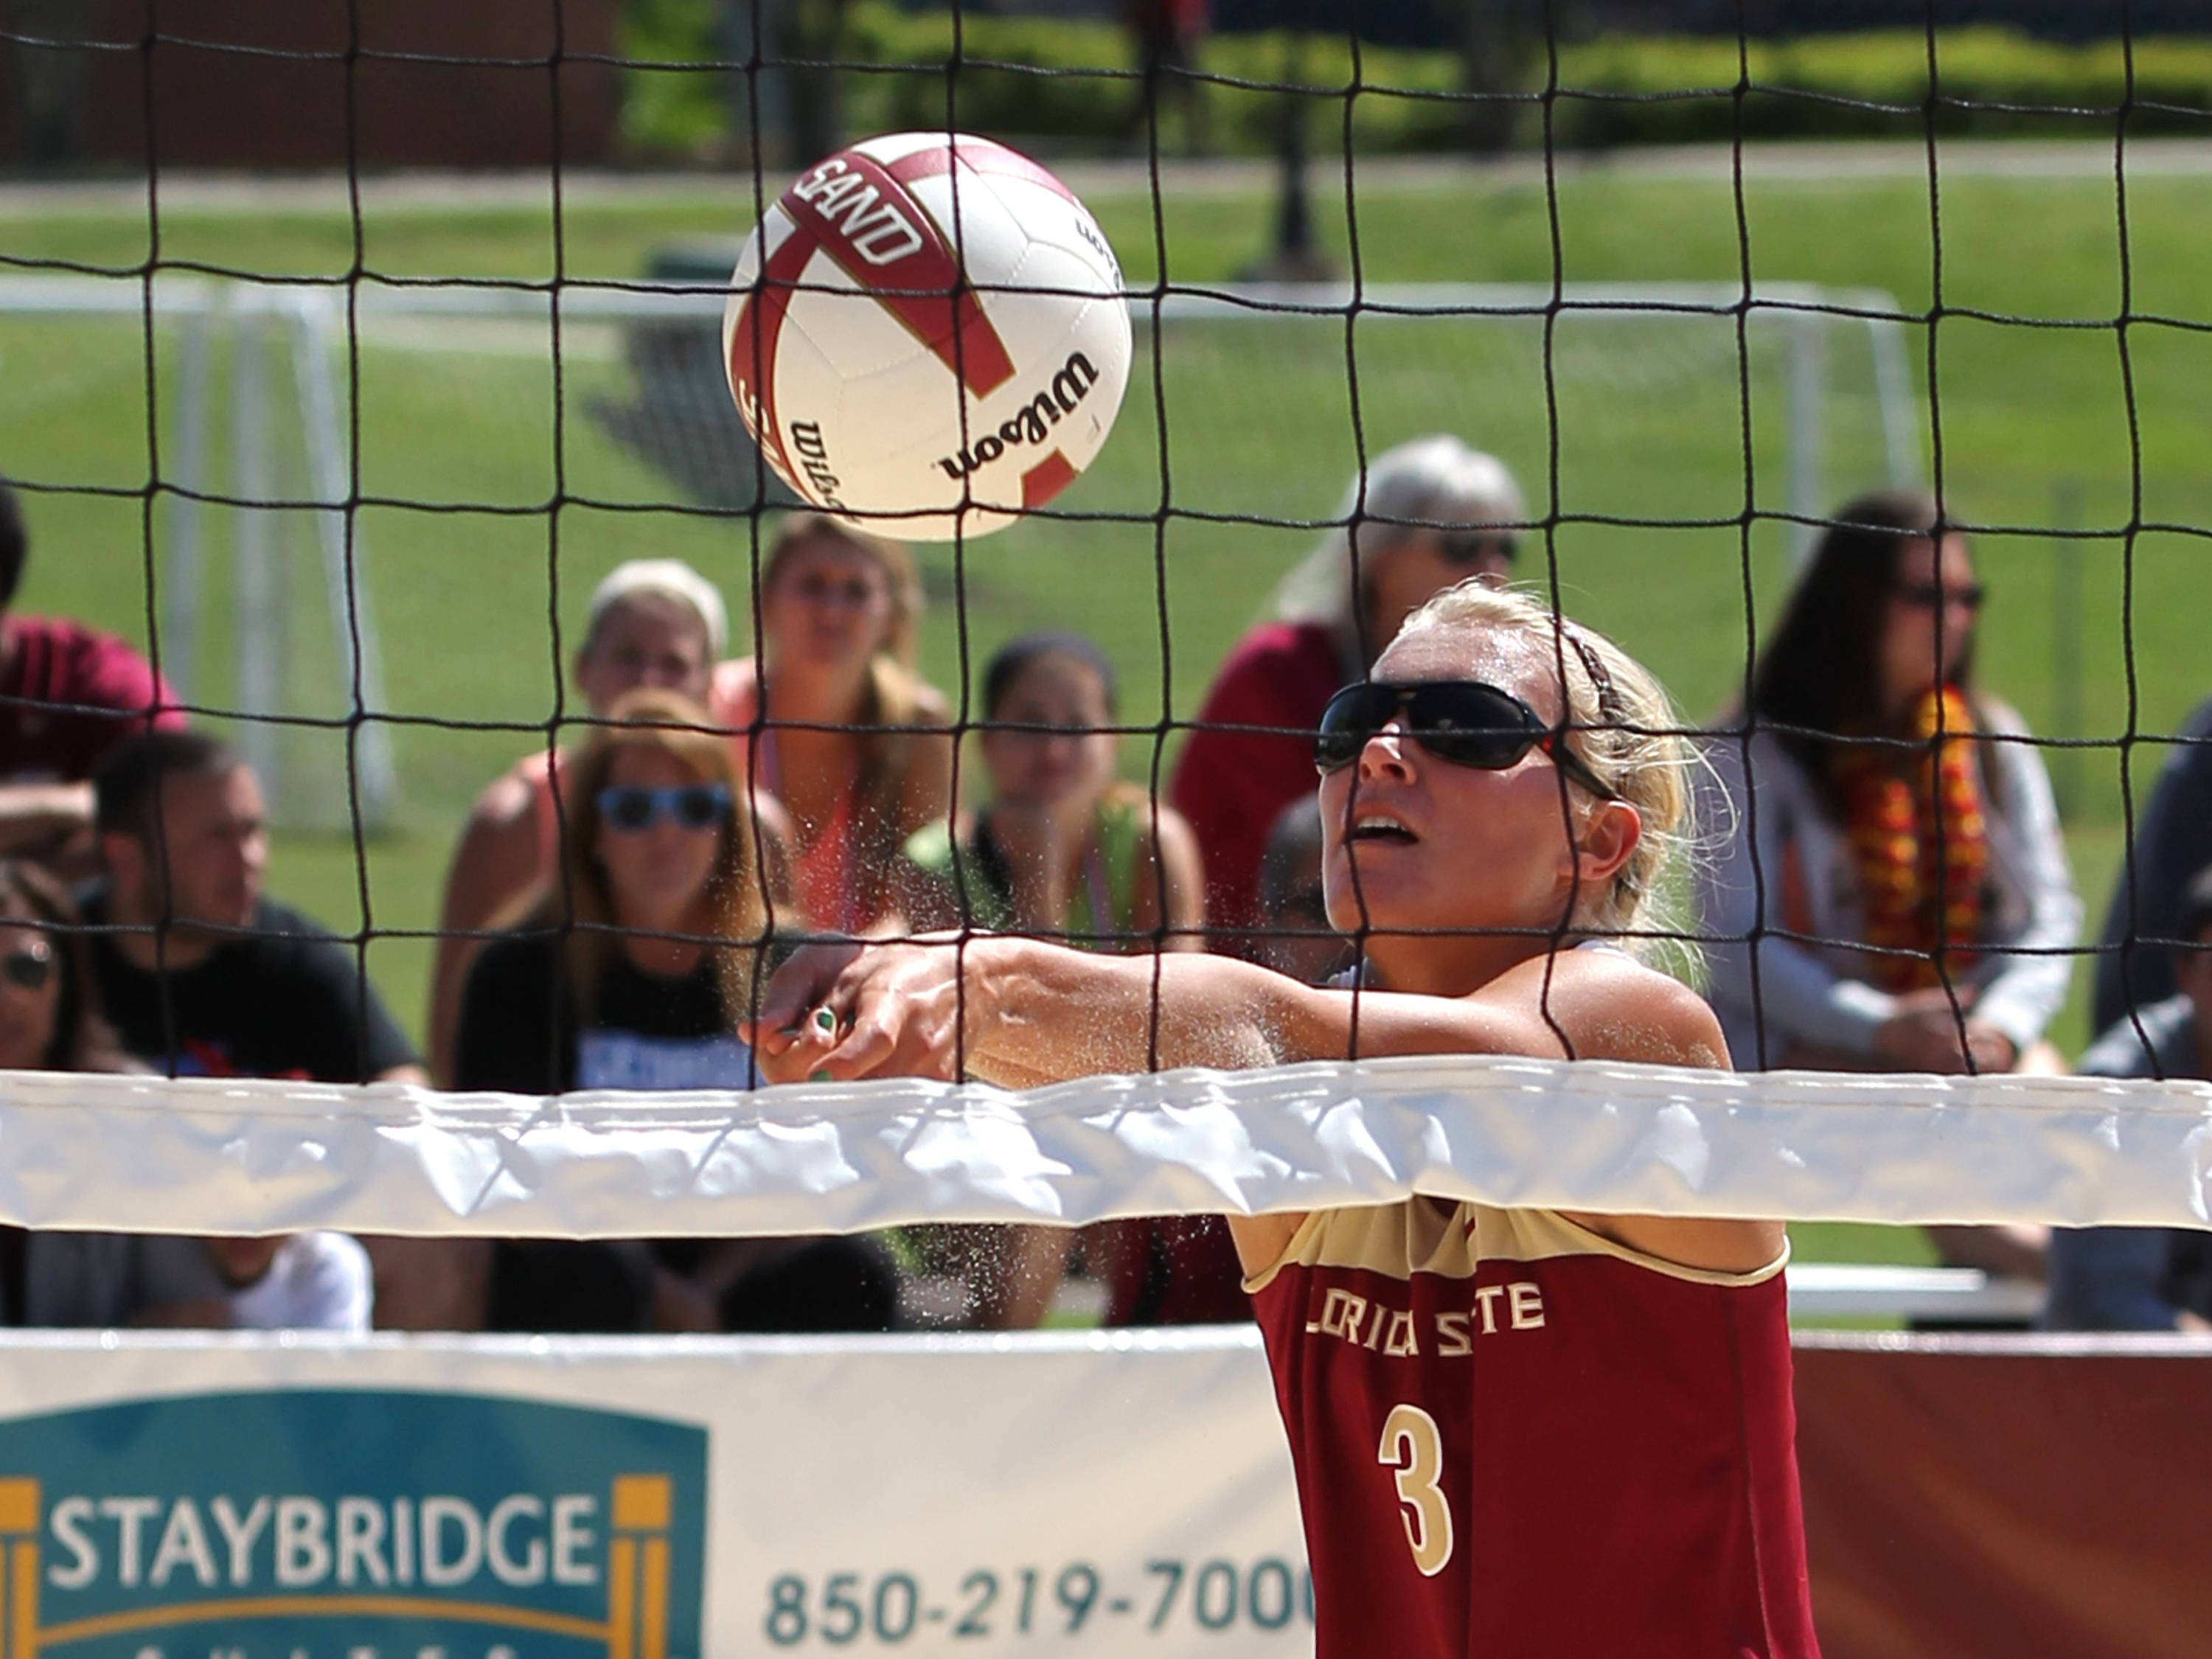 Julie Brown, Sand Volleyball Tournament,  04/20/13 . (Photo by Steve Musco)